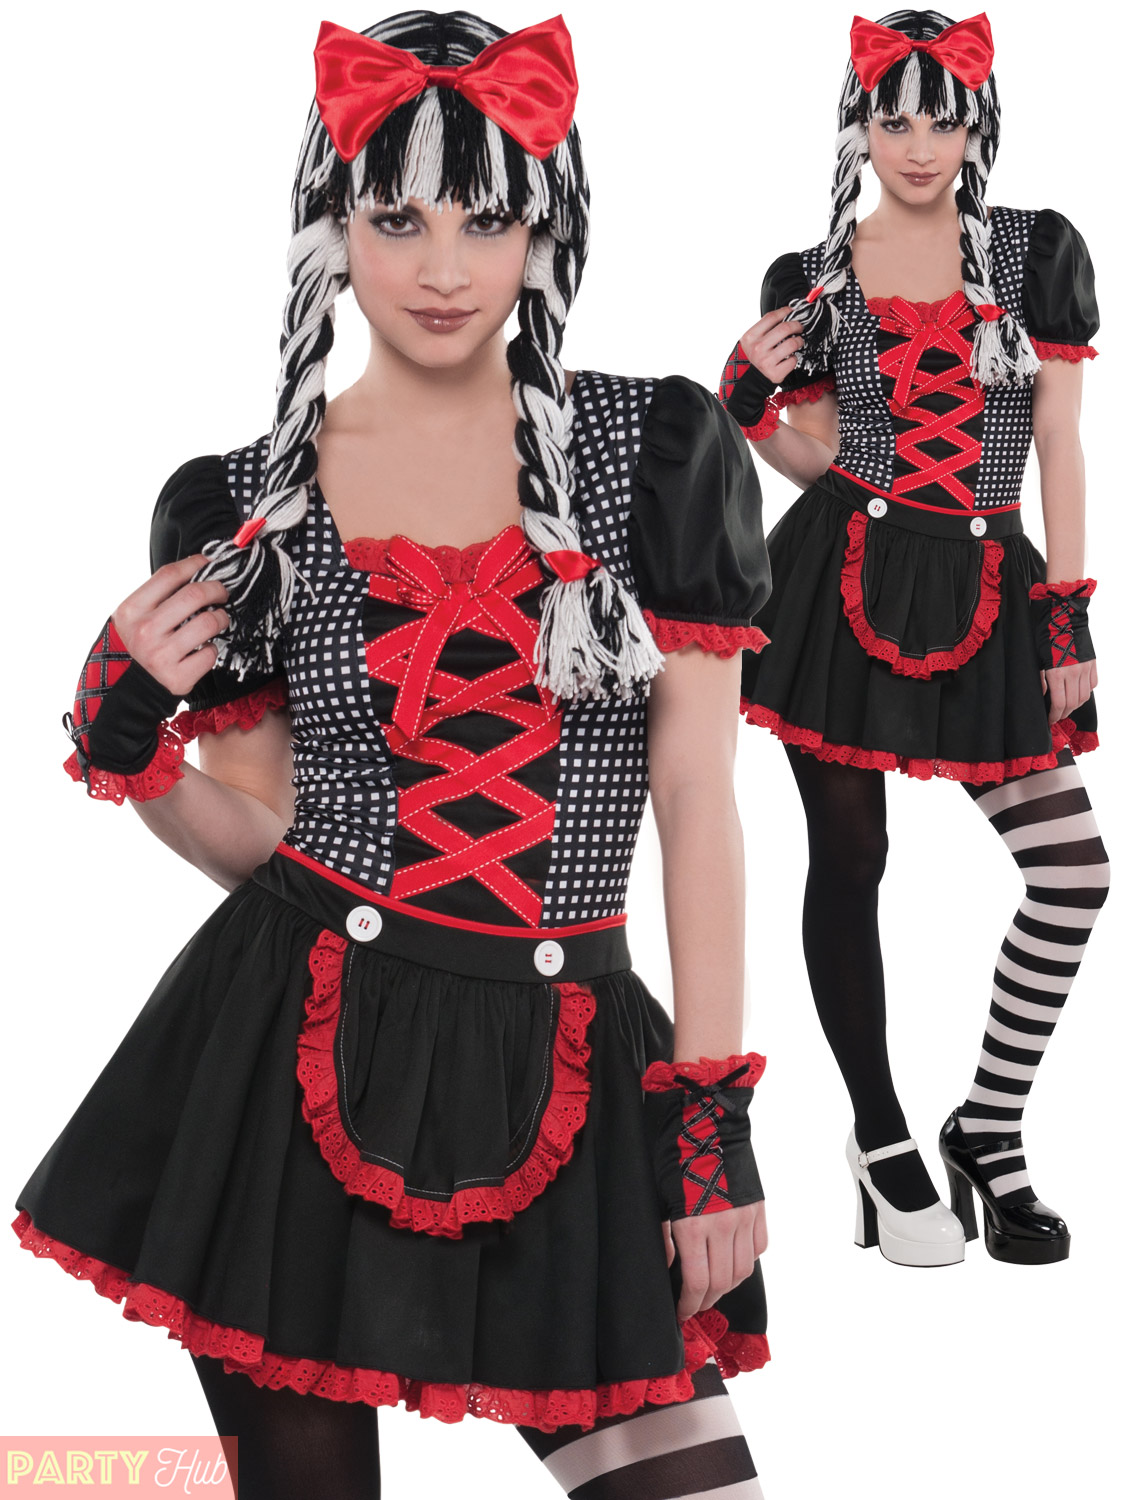 Girls Teen Goth Doll Costume Childs Halloween Gothic Ragdoll Fancy Dress Outfit